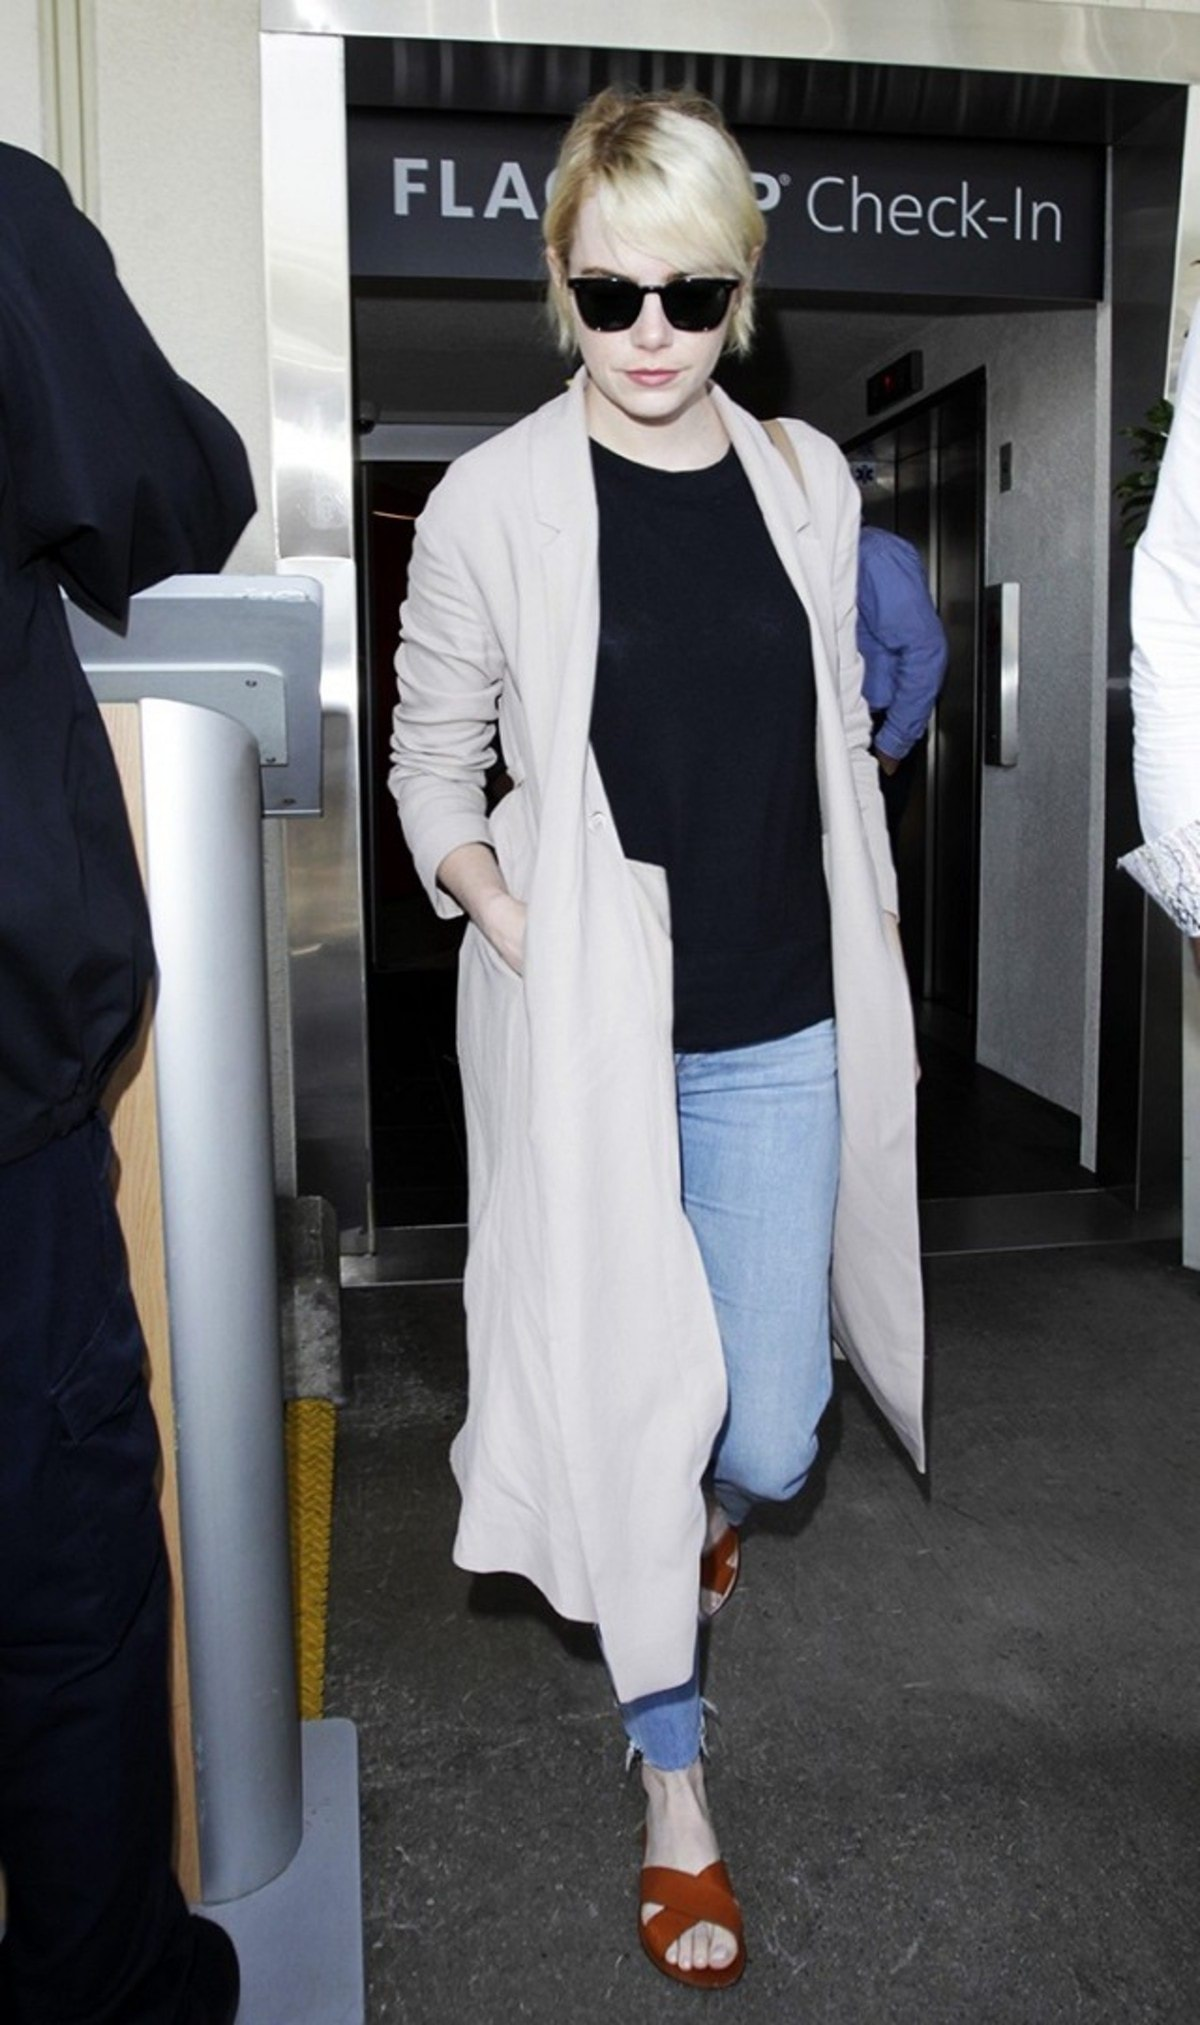 7-summer-airport-outfits-you-already-own-1808604-1466120028.640x0c